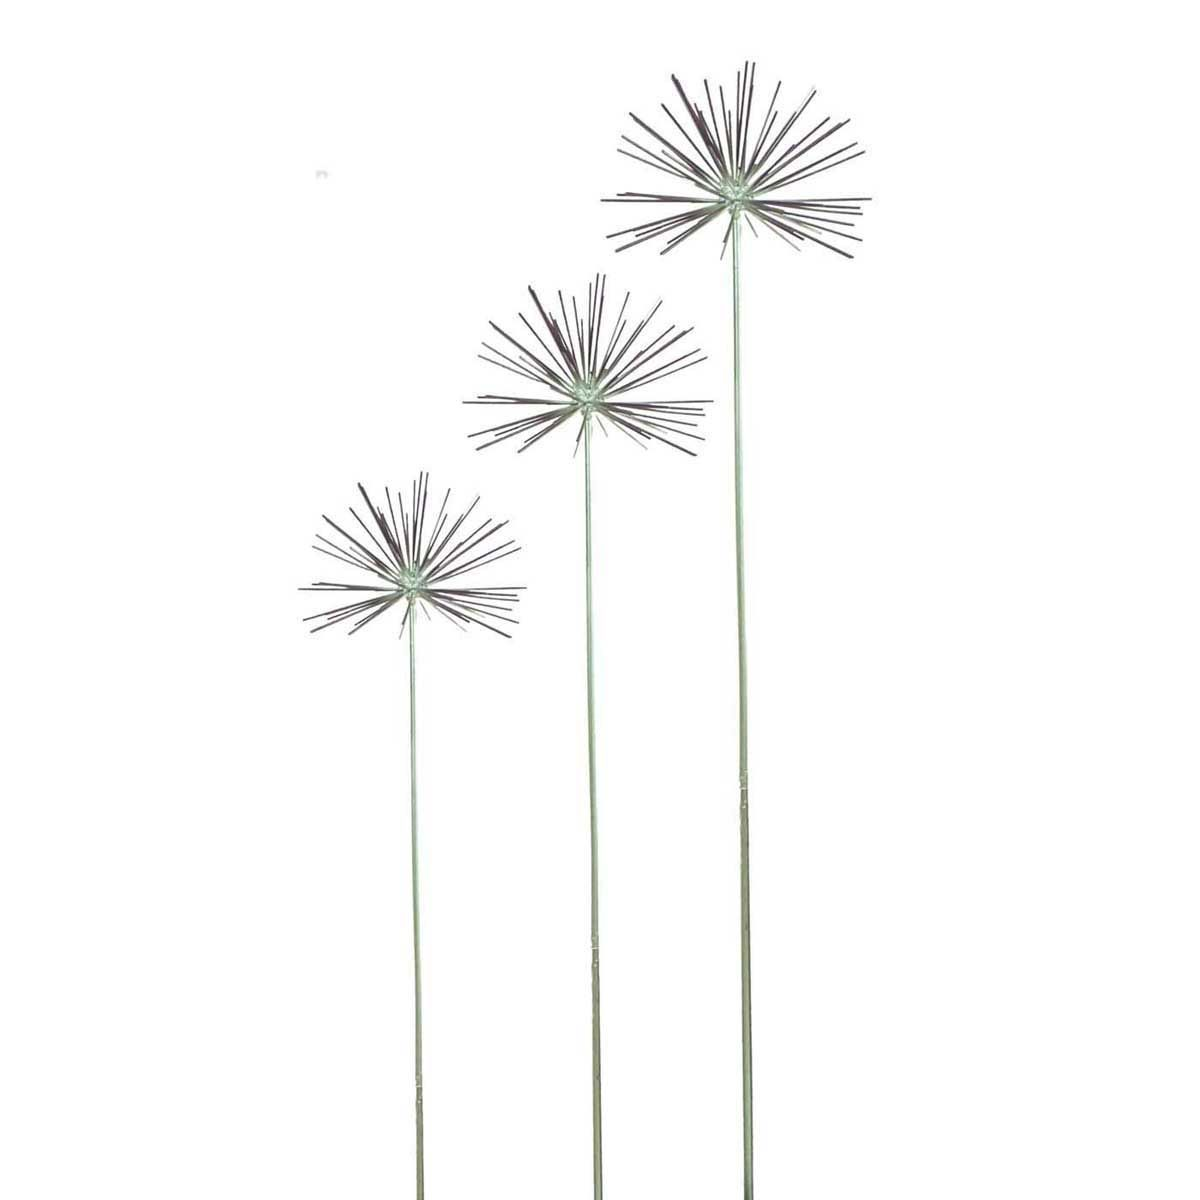 Metal allium flower garden ornament decoration decor for Flower garden ornaments